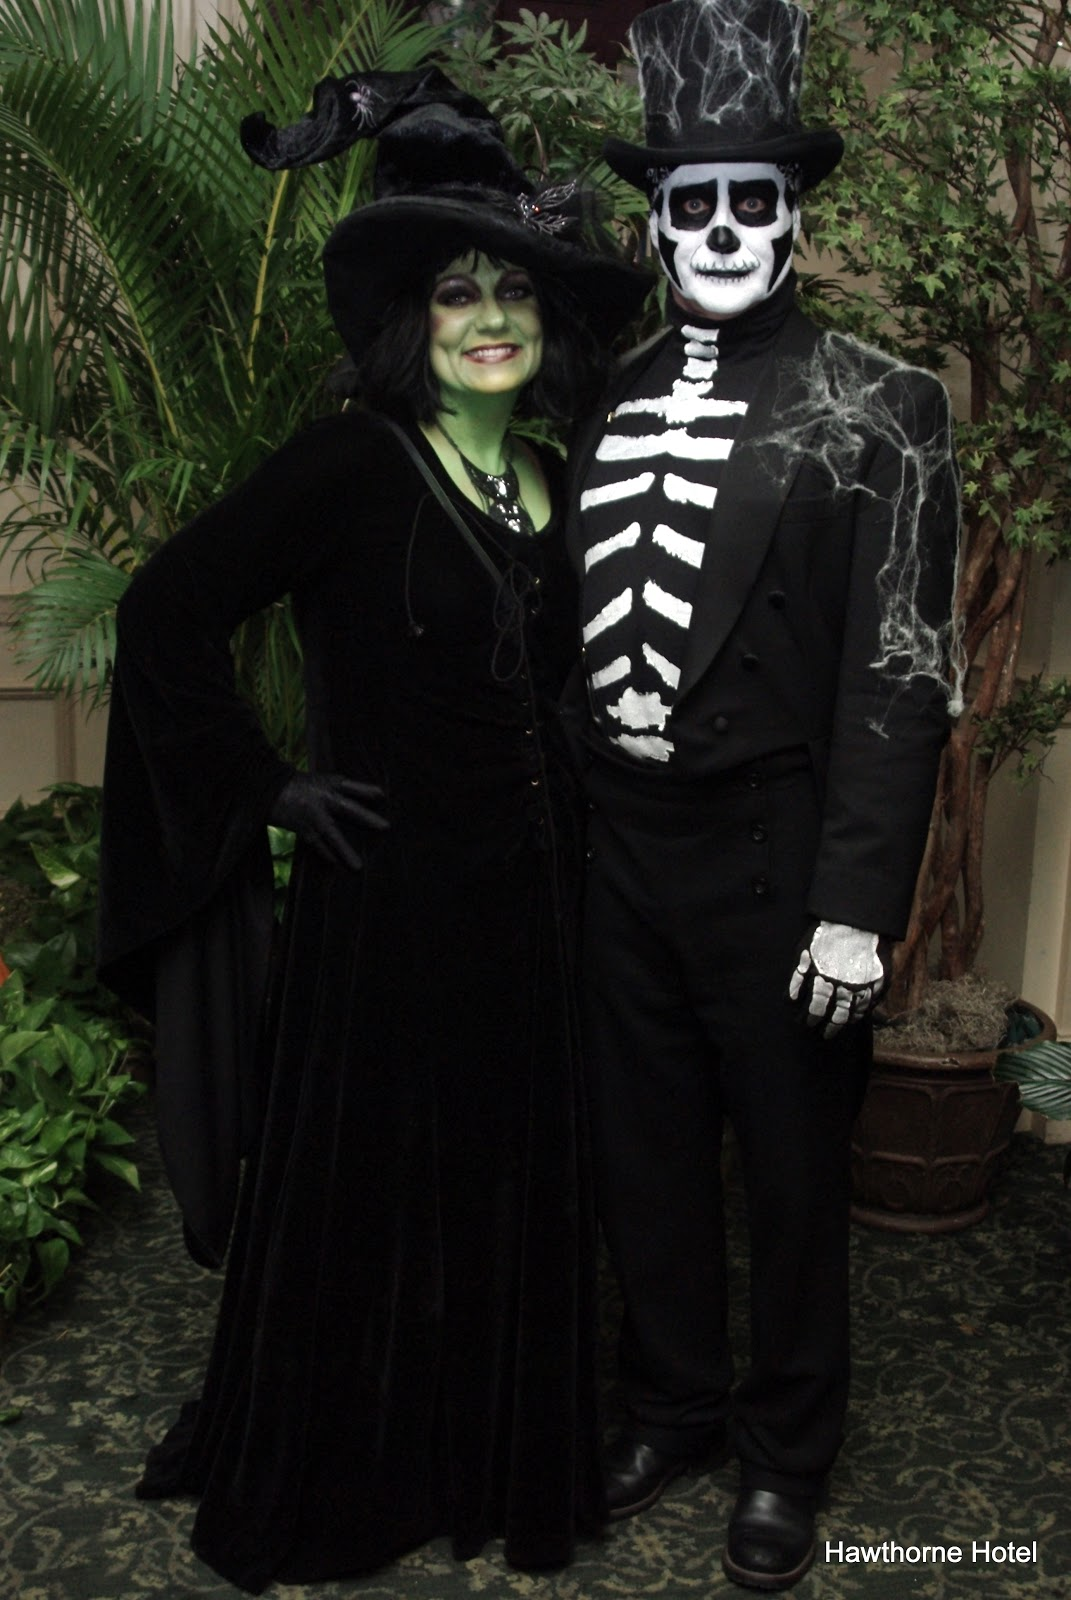 Hawthorne Hotel: Salem's Best Halloween Costumes at the Hawthorne